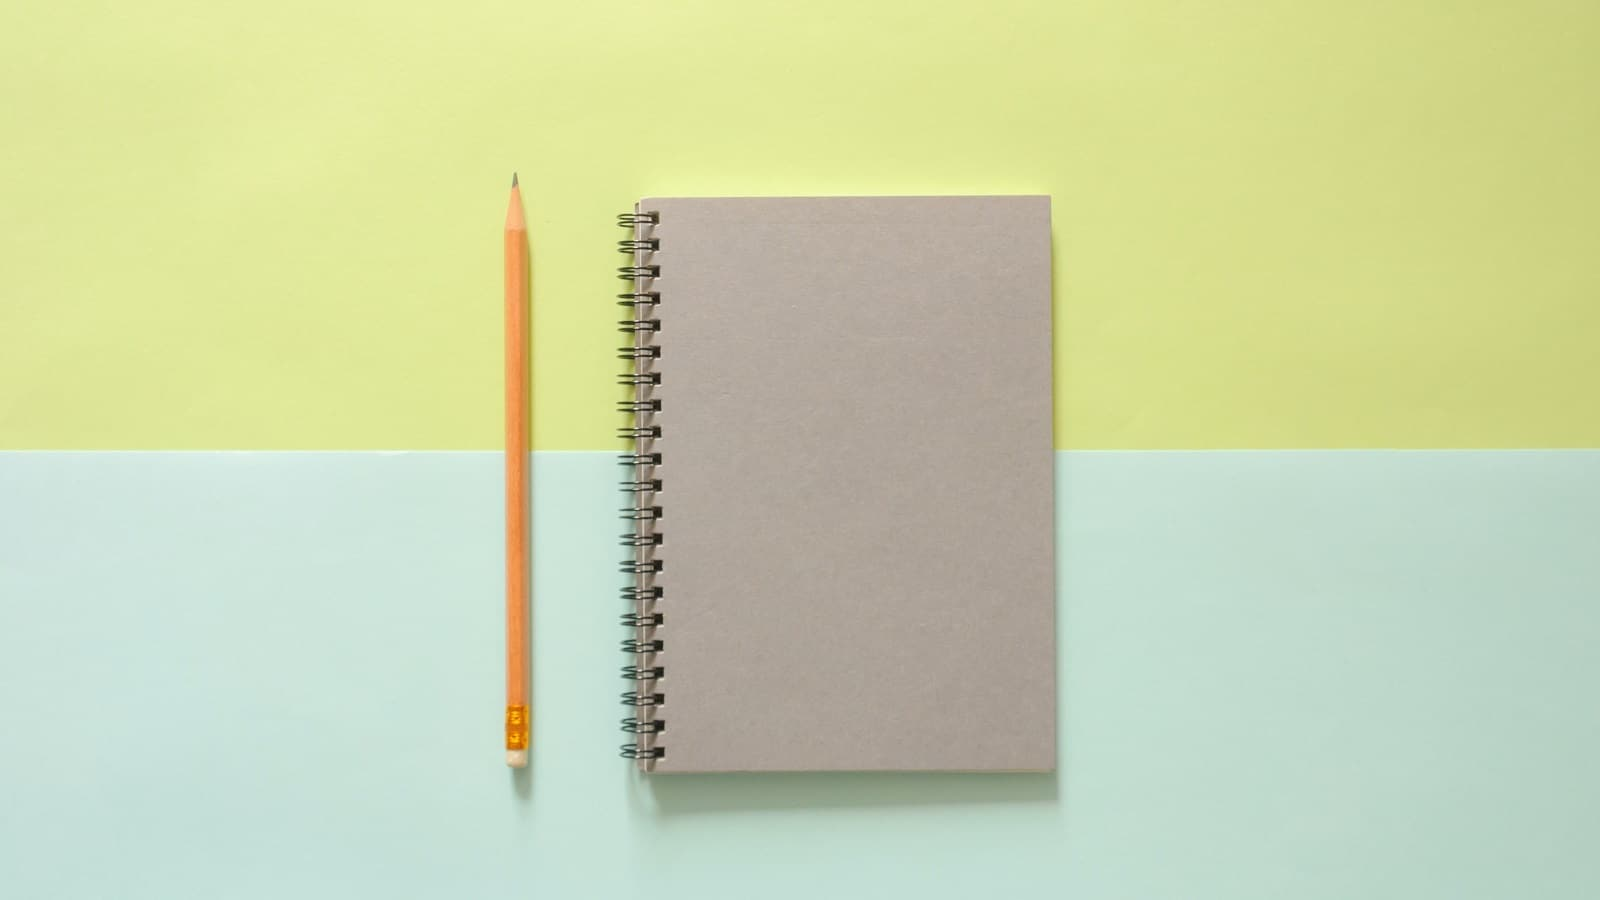 Closed notebook with pencil on green and blue background